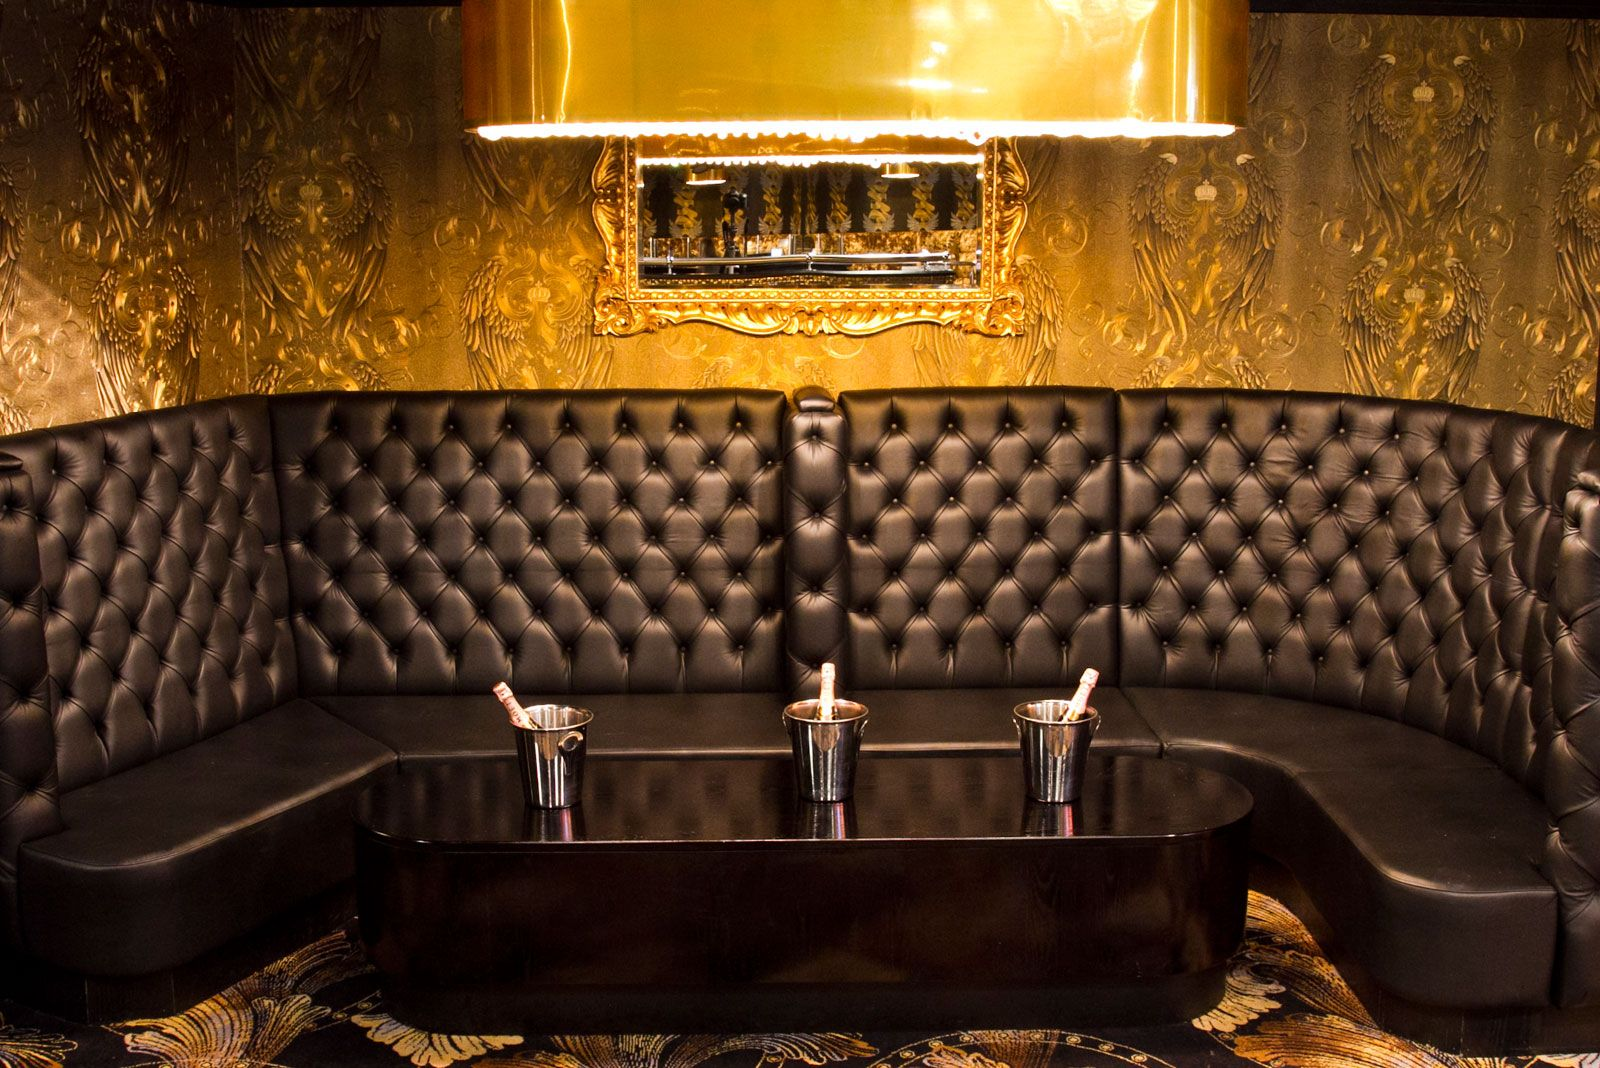 Restaurant Sofa Booth Seating Bed Ashley Cozy Banquette For Family Togetherness Luxury